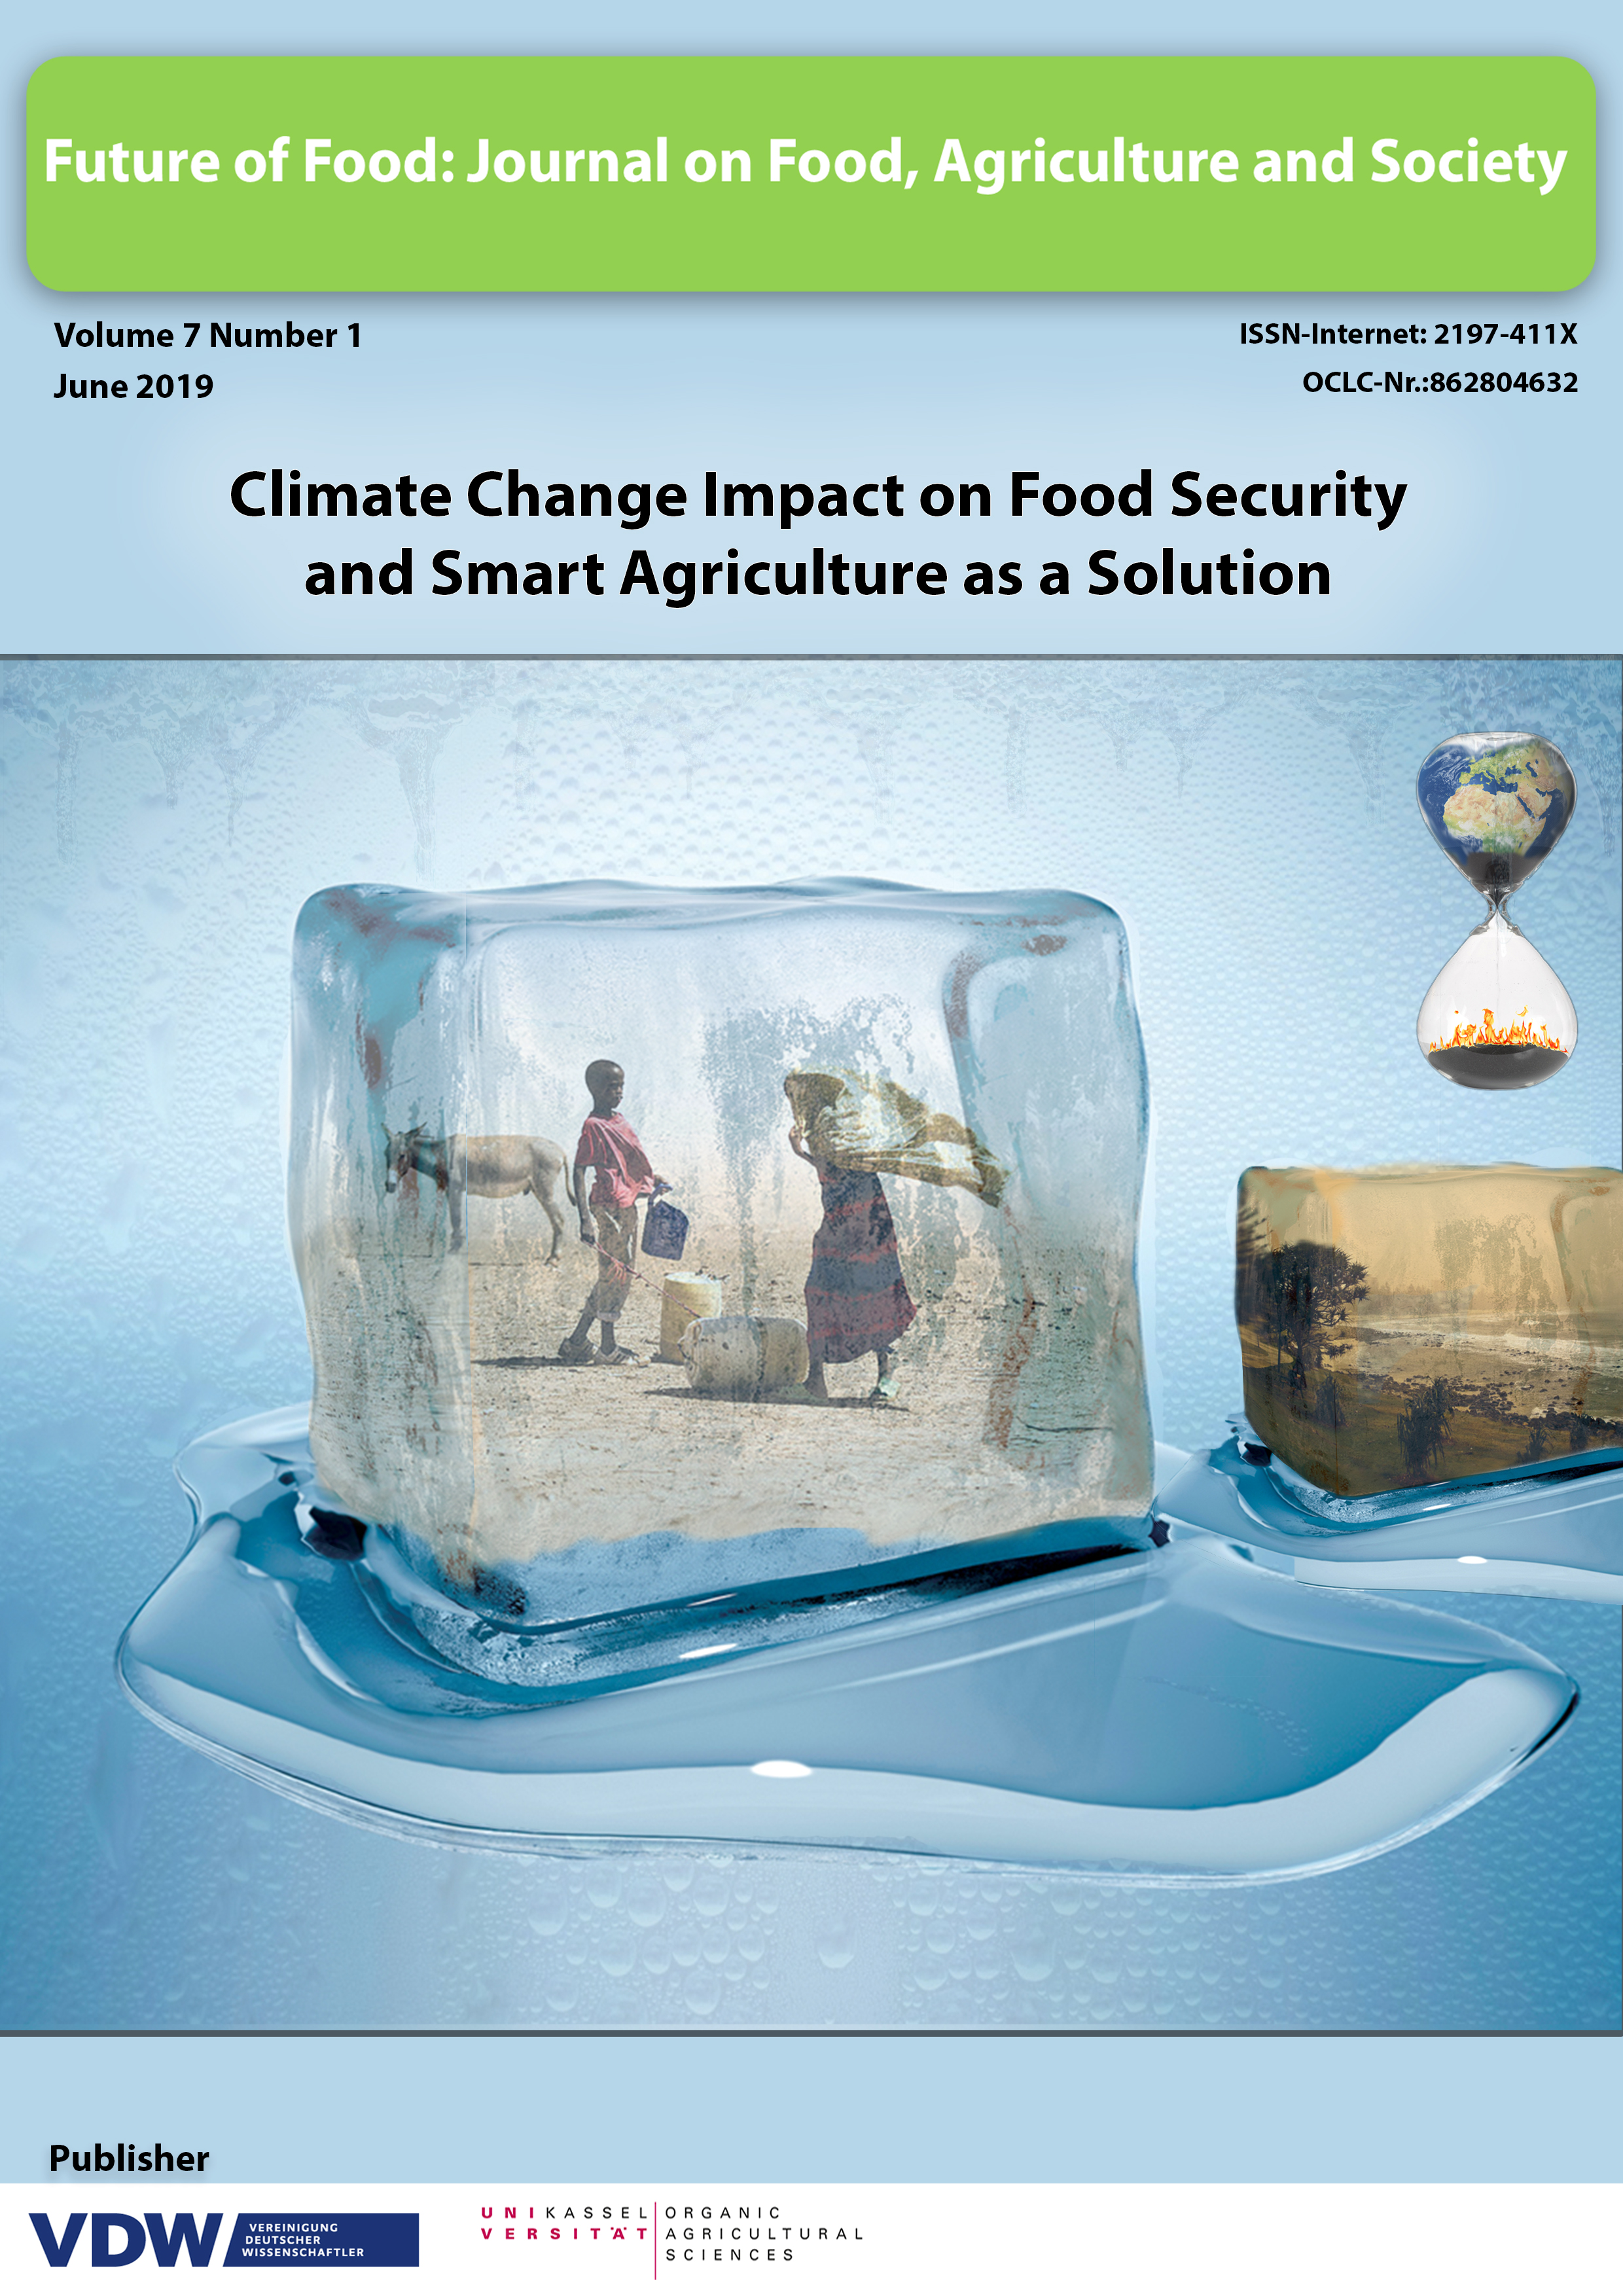 The image shows rural people in a melting icecube under the heading climate change impact on food security and smart agriculture as a solution